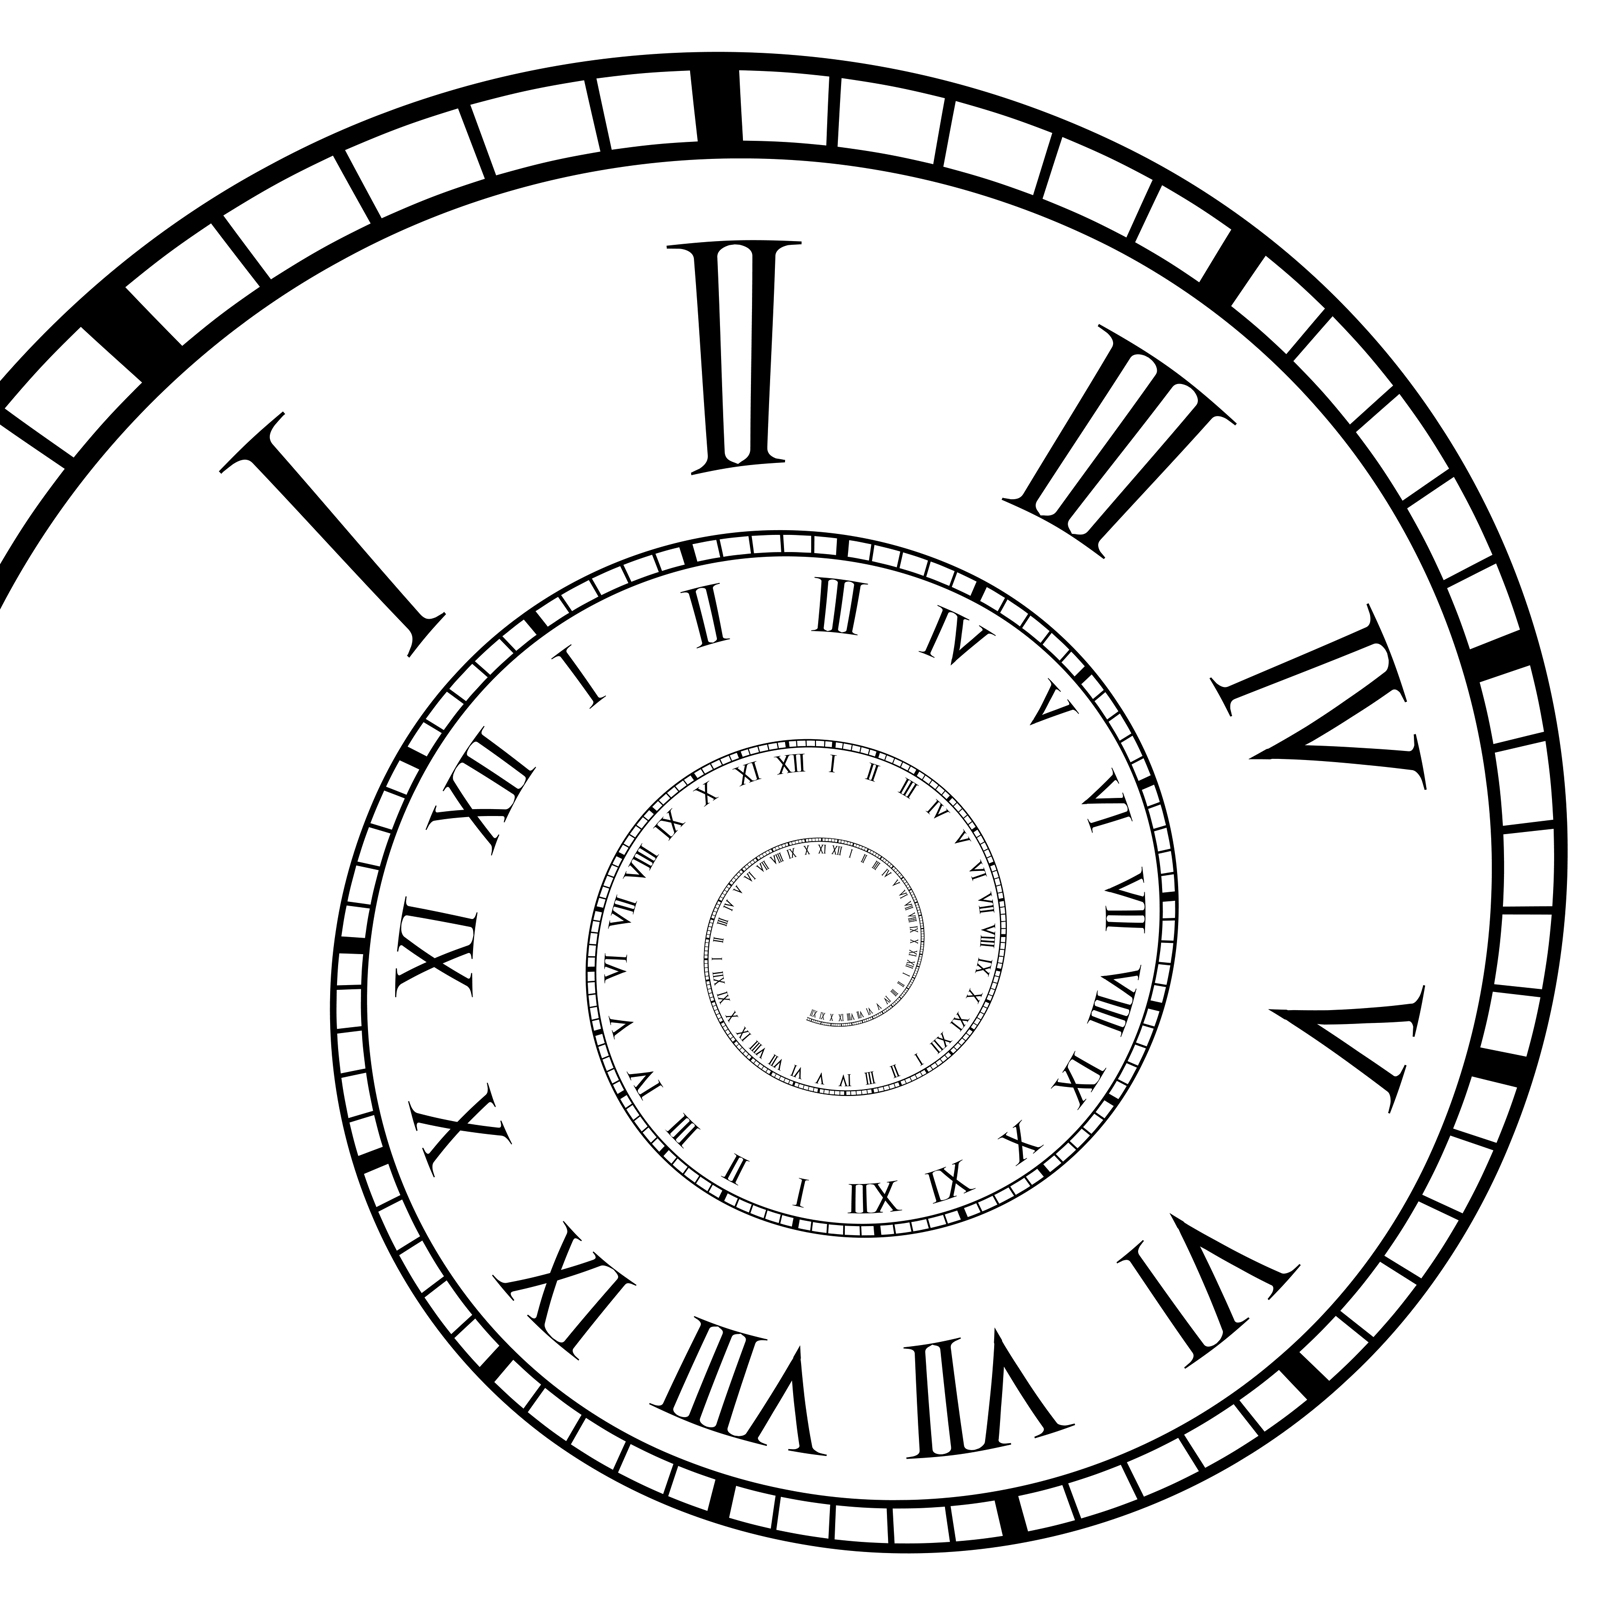 1600x1600 Collection Of Roman Numerals Clock Face Tattoo Sample